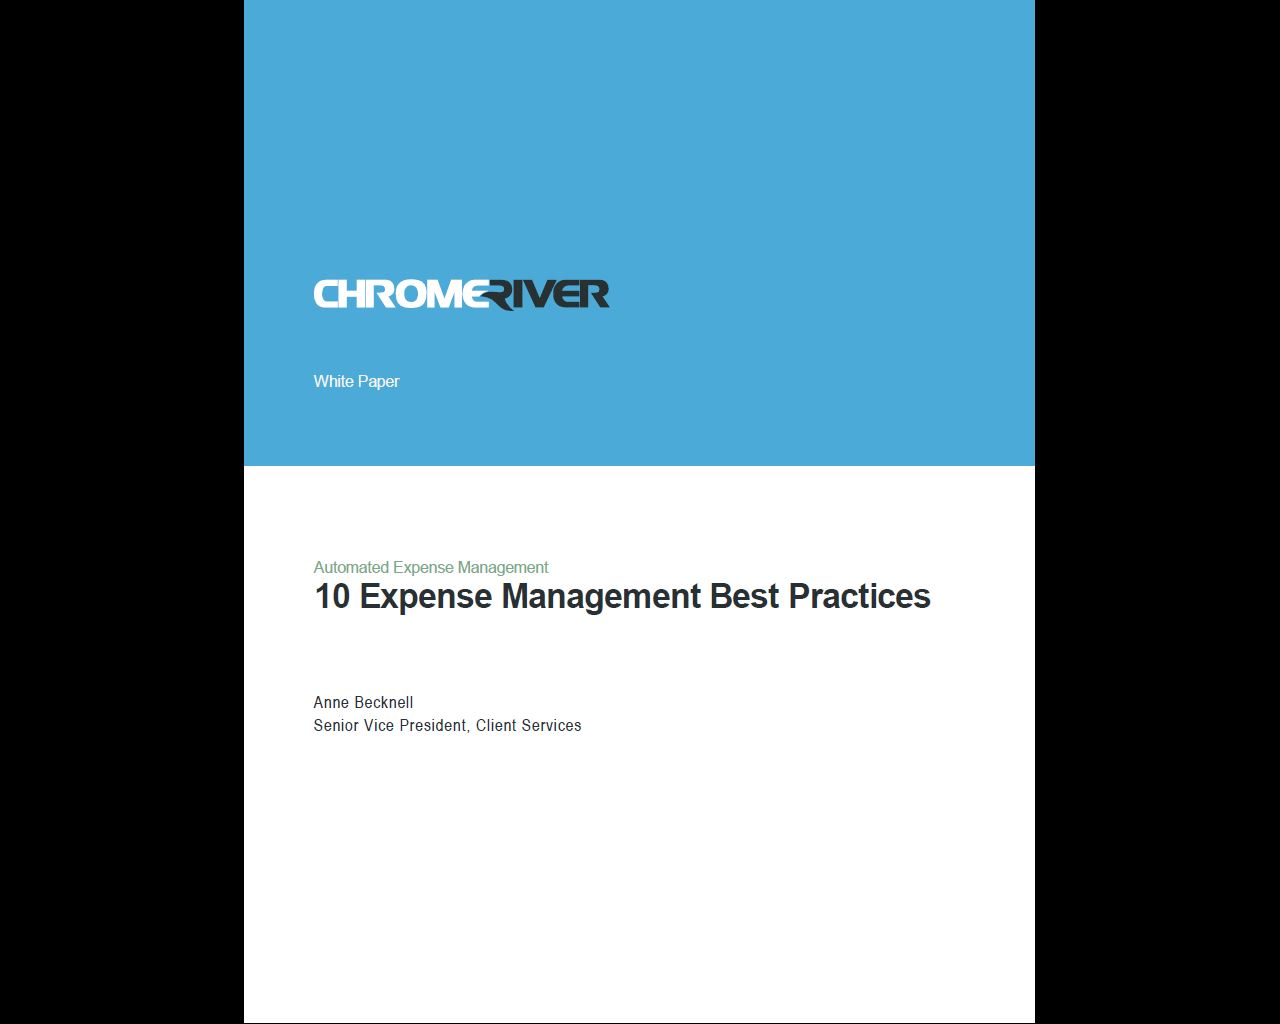 Chrome River - 10 Expense Management Best Practices